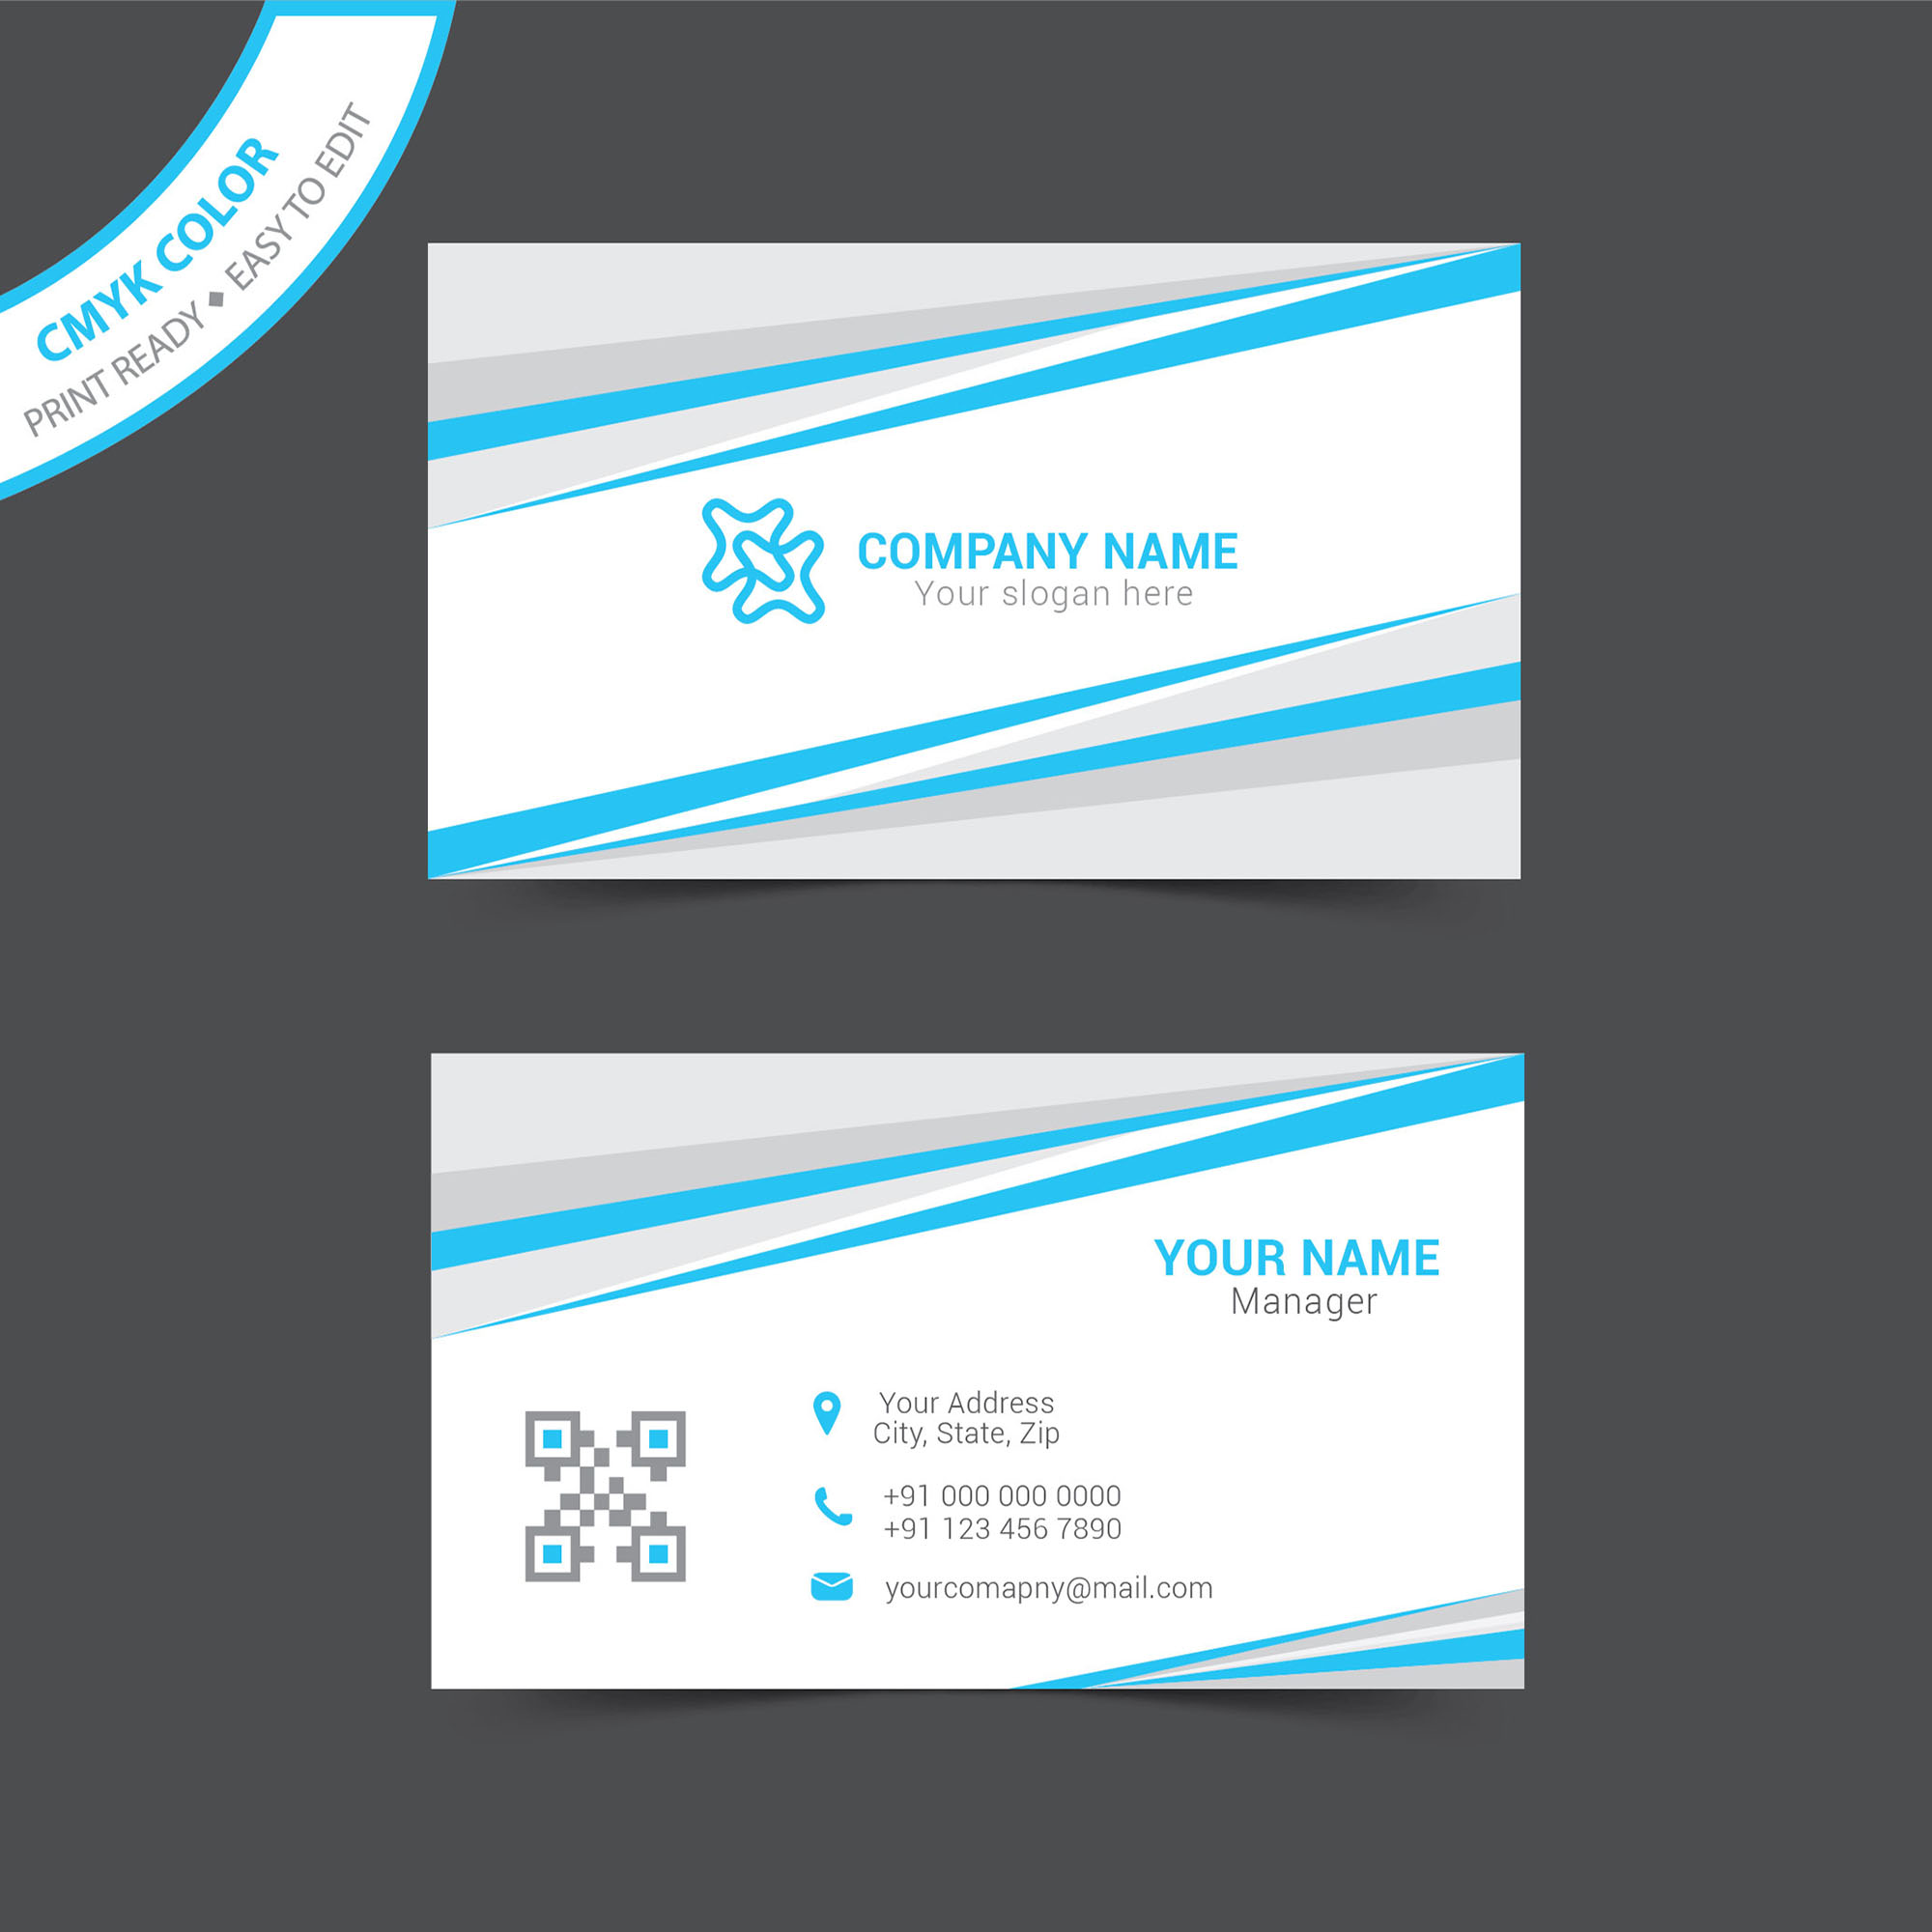 Simple business card template free download wisxi business card business cards business card design business card template design templates flashek Images